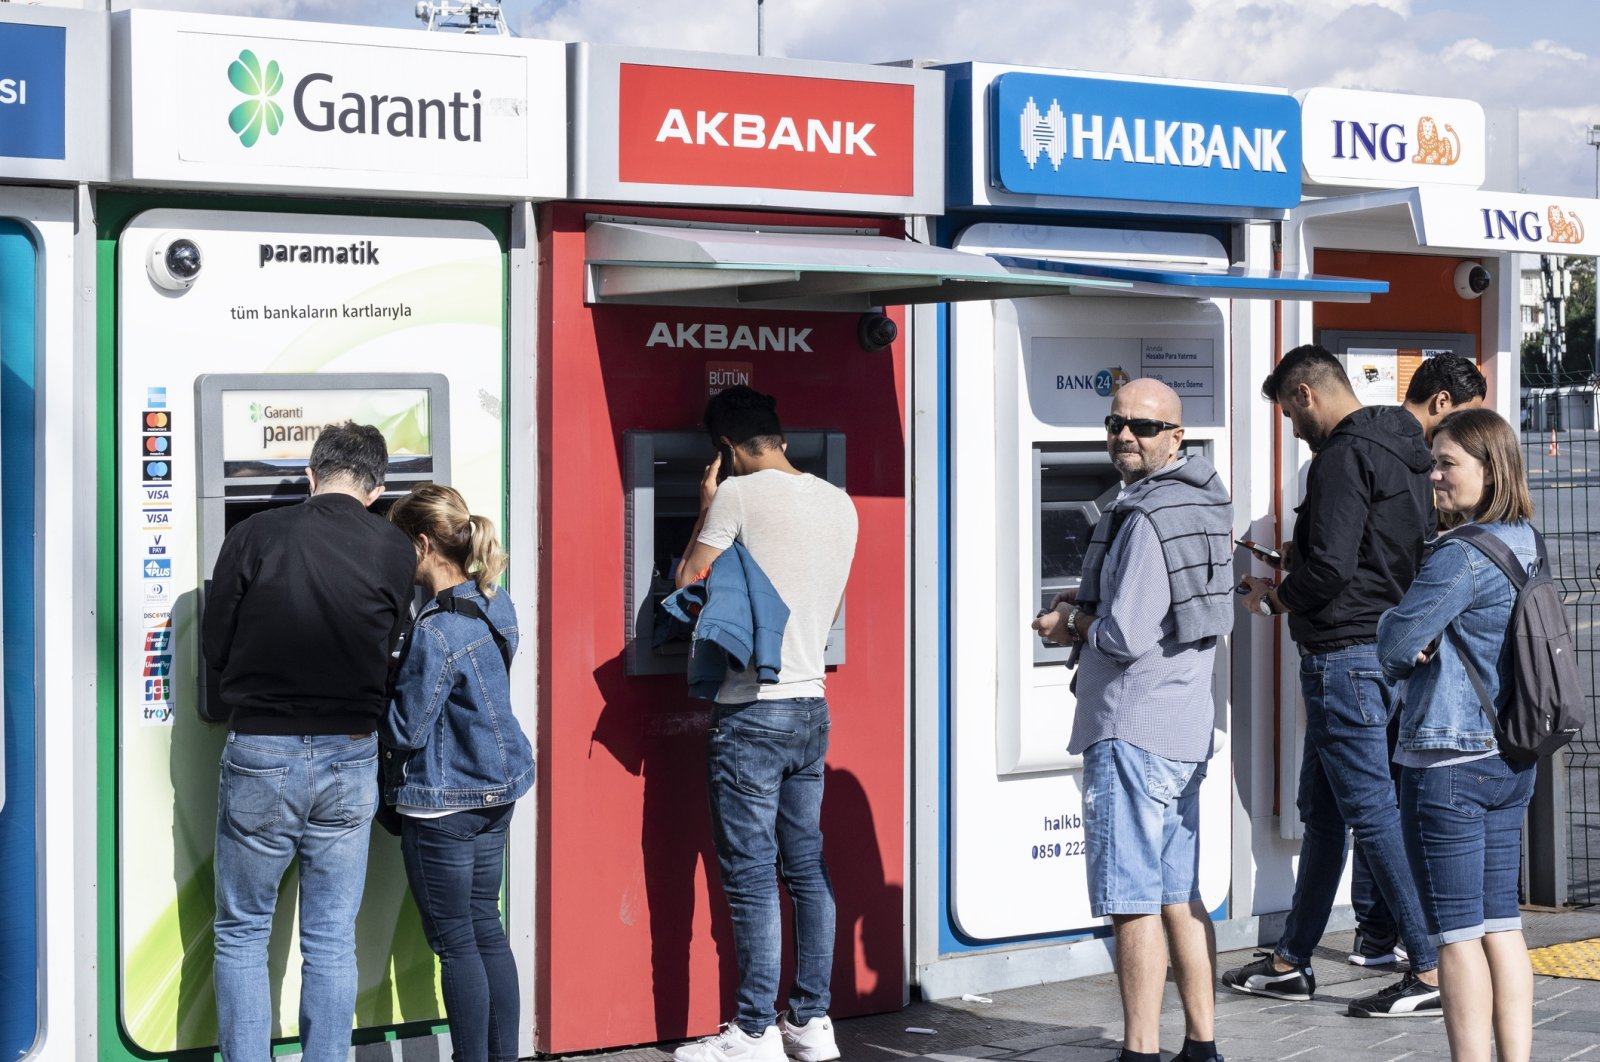 People are seen in front of bank ATMs in Istanbul, Turkey, Oct. 6, 2019. (iStock Photo)